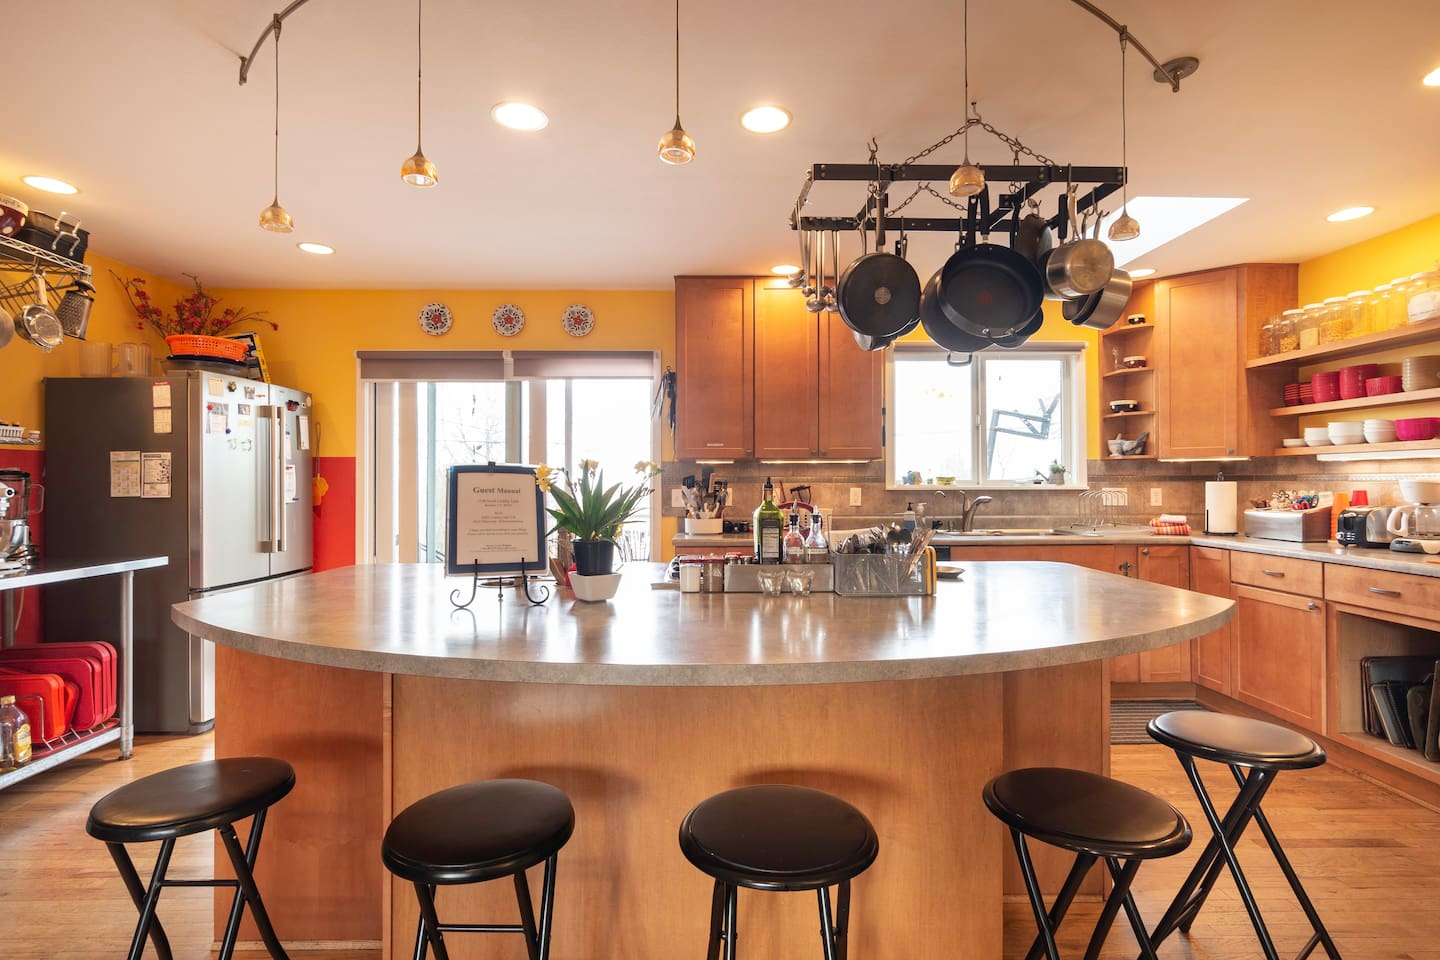 This coveted kitchen has an 8 ft counter, gas cooktop, wall oven & microwave. It is fully stocked and ready for you to cook like a chef or just hangout and enjoy the sunny view.